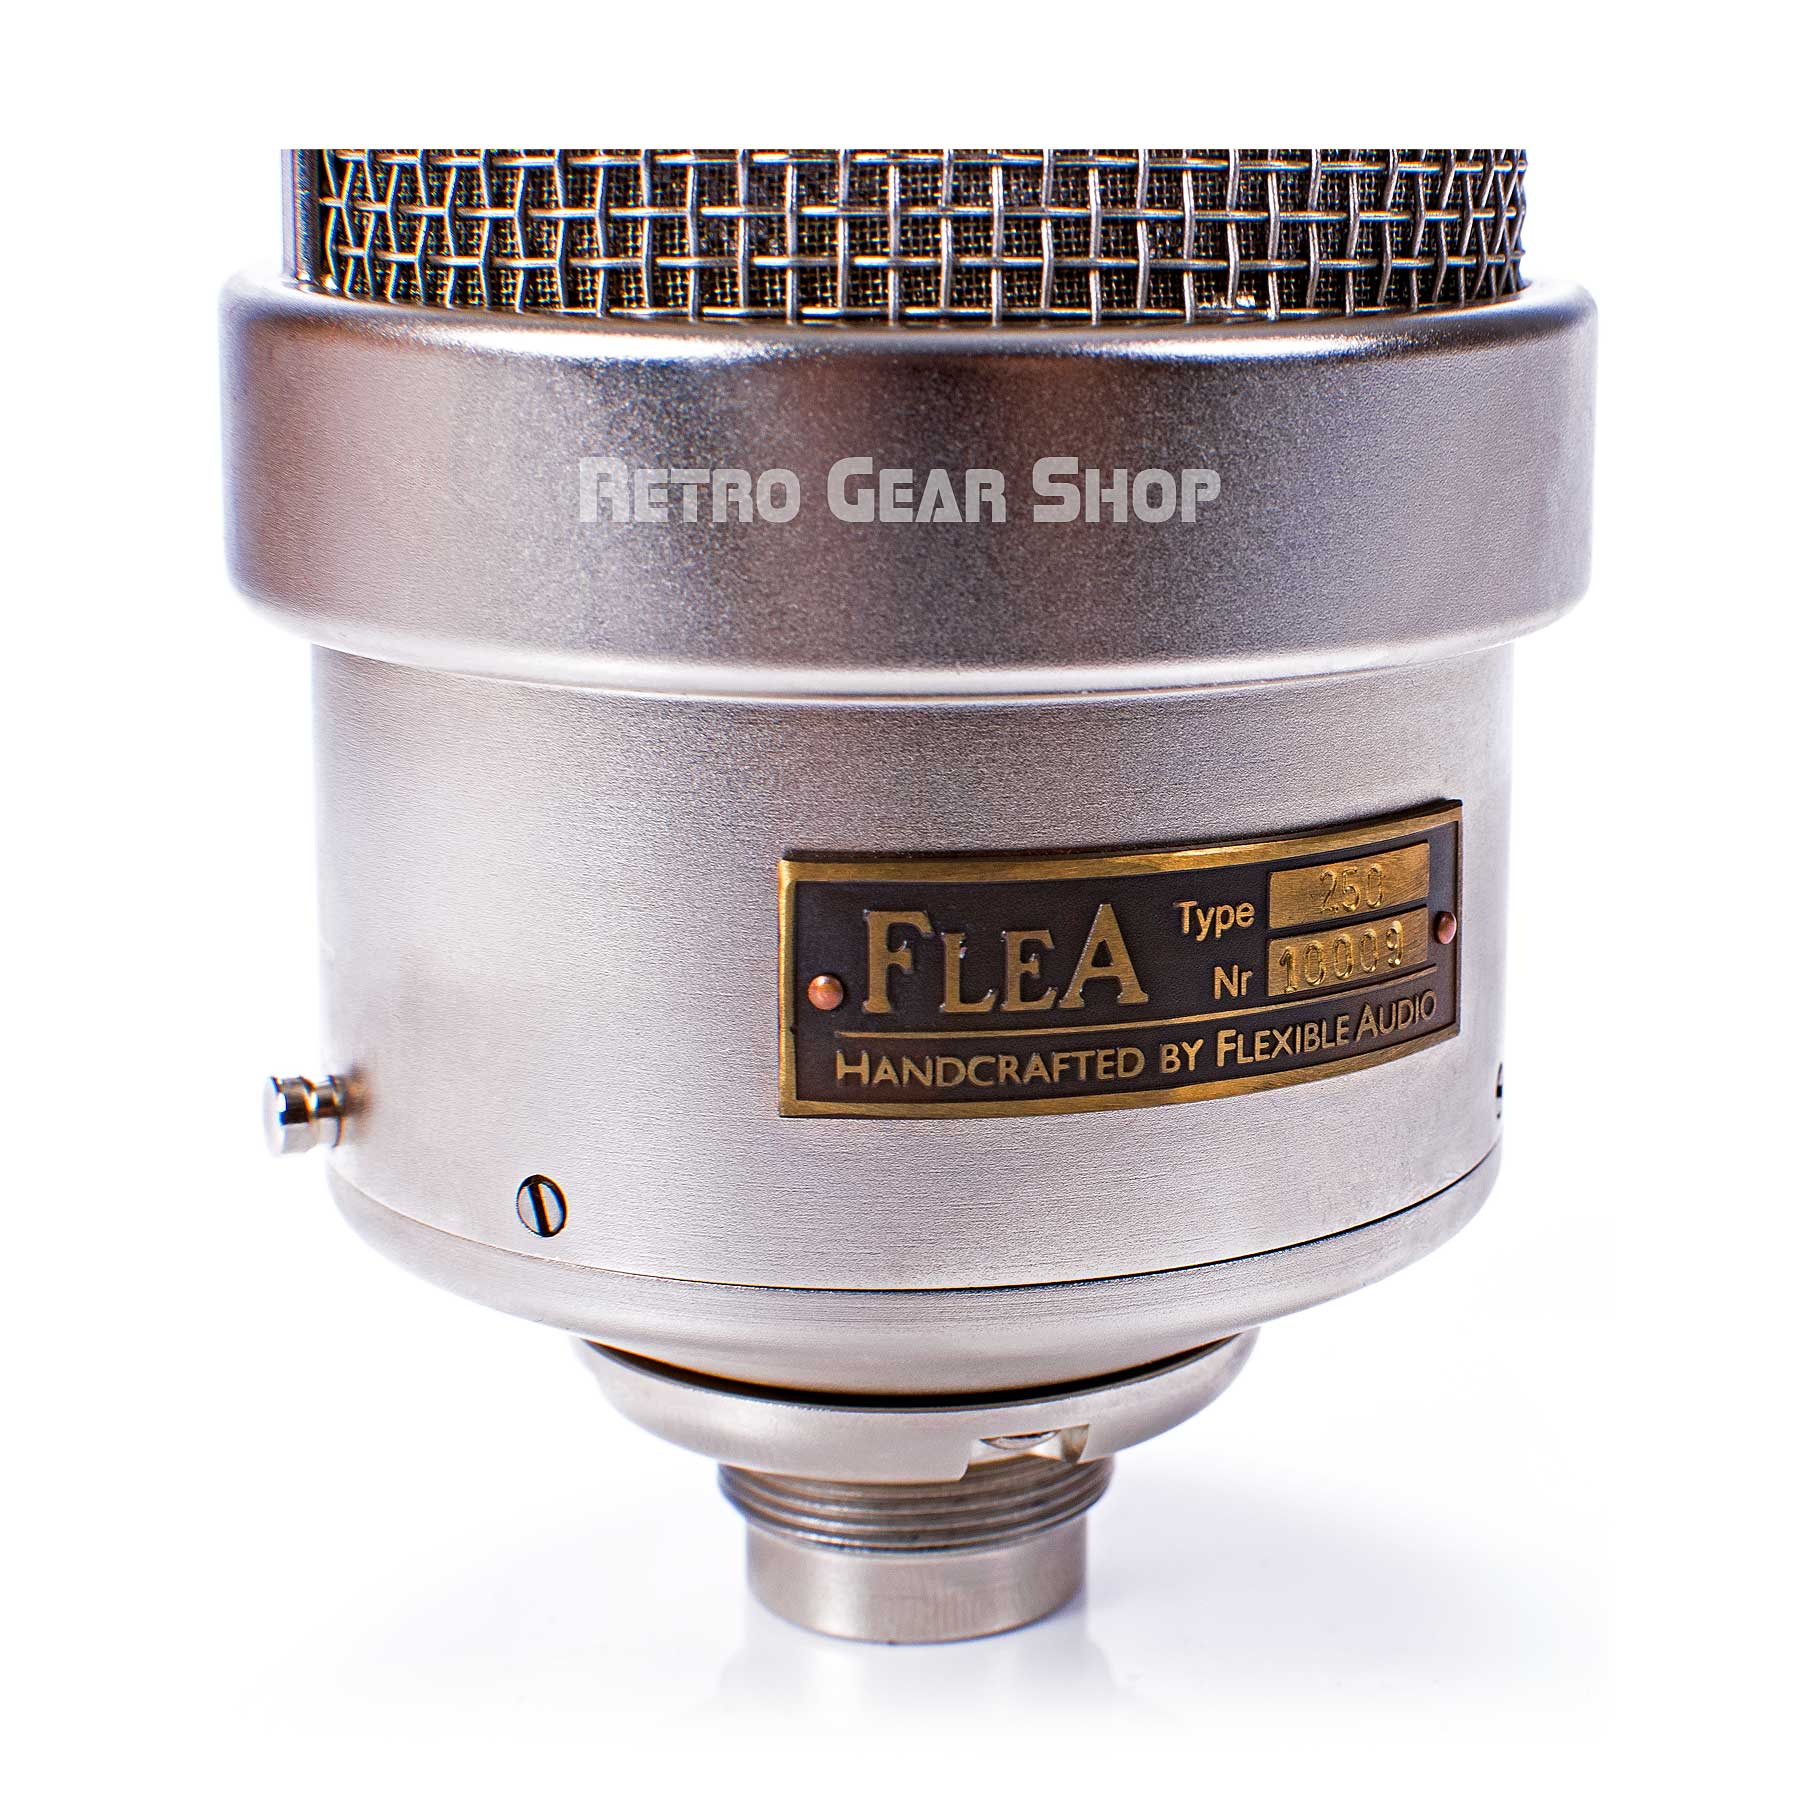 FLEA Microphones 250 Serial Number